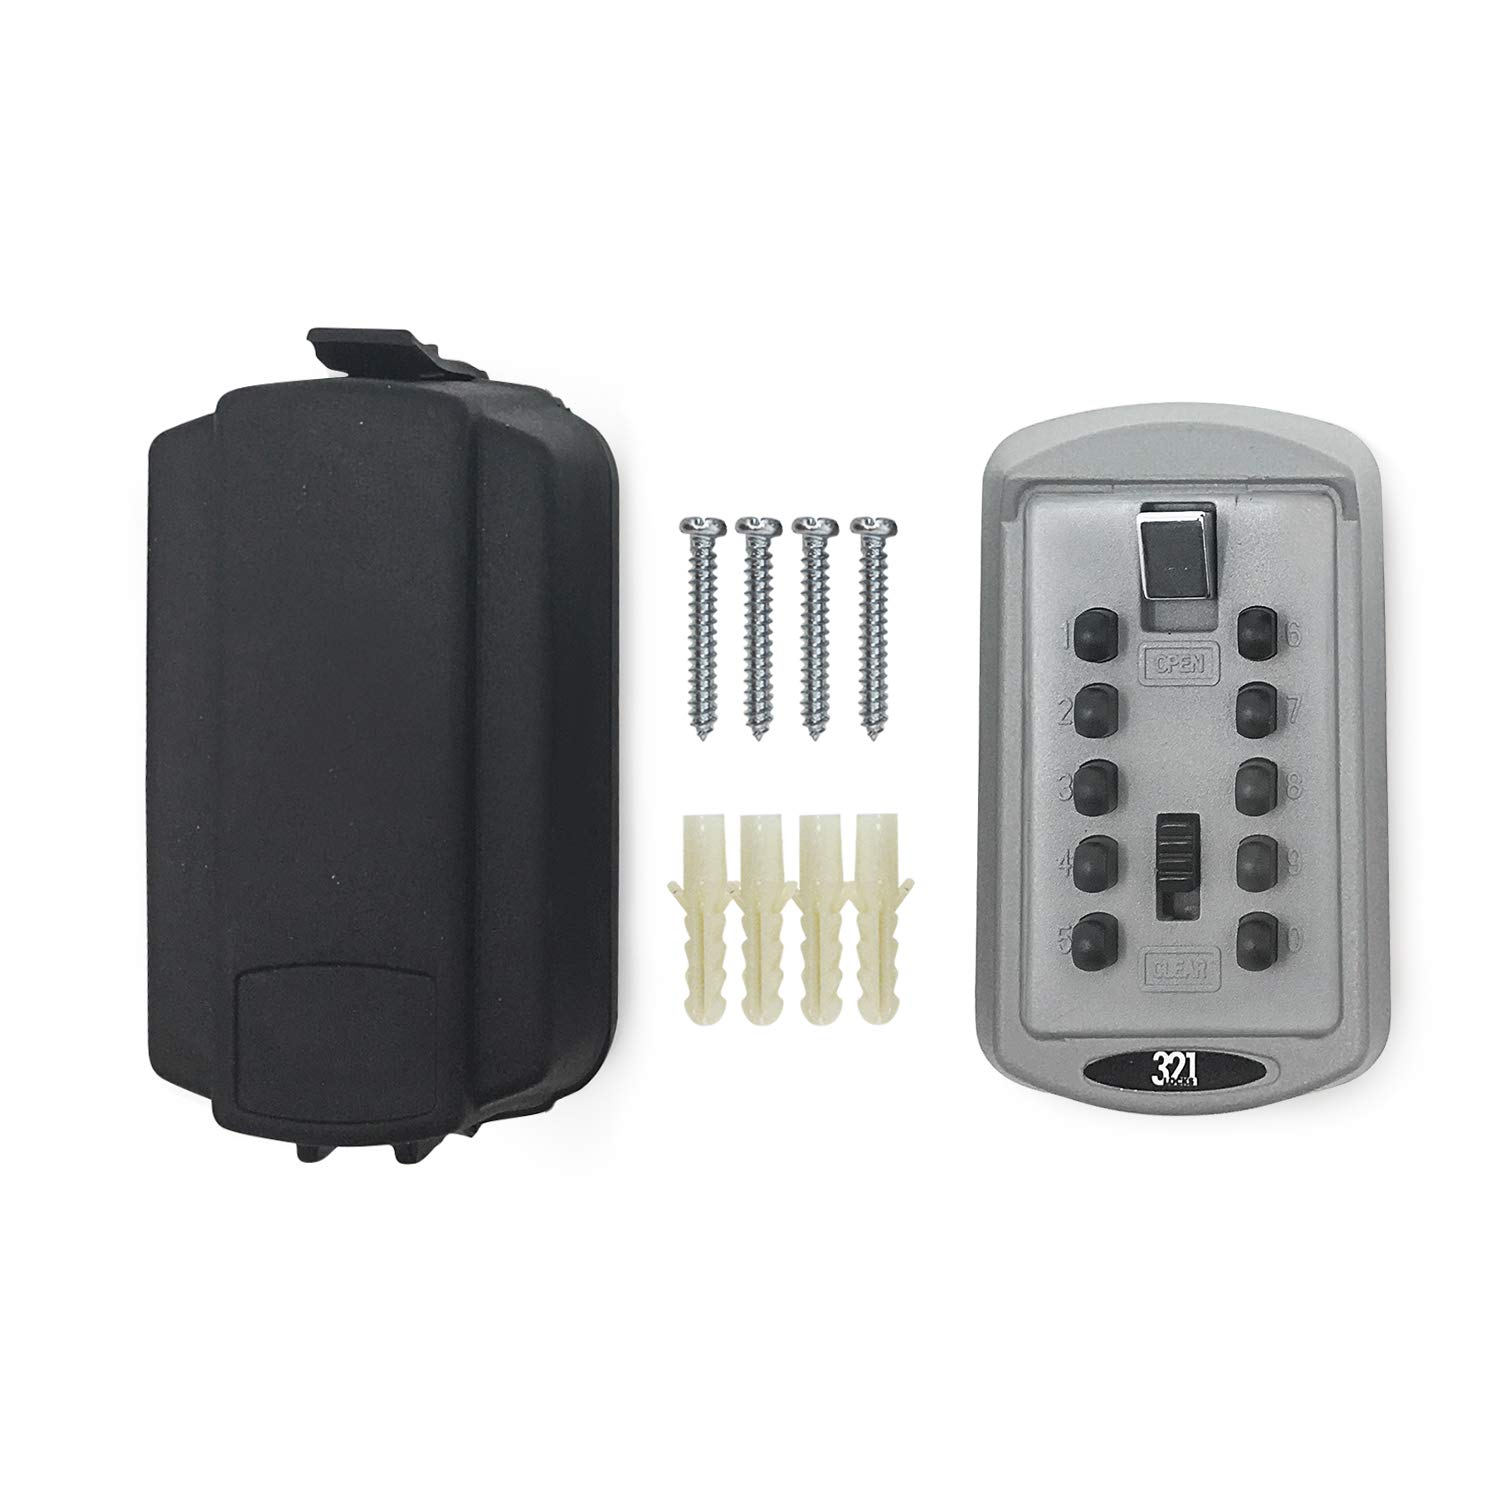 358bc89c17ca LB-30 Key Lock Box Wall Mounted Key Safe - 4 Pin Combination -for Home,  Work, Office, Construction Site, Schools - Outdoor Master Key Security